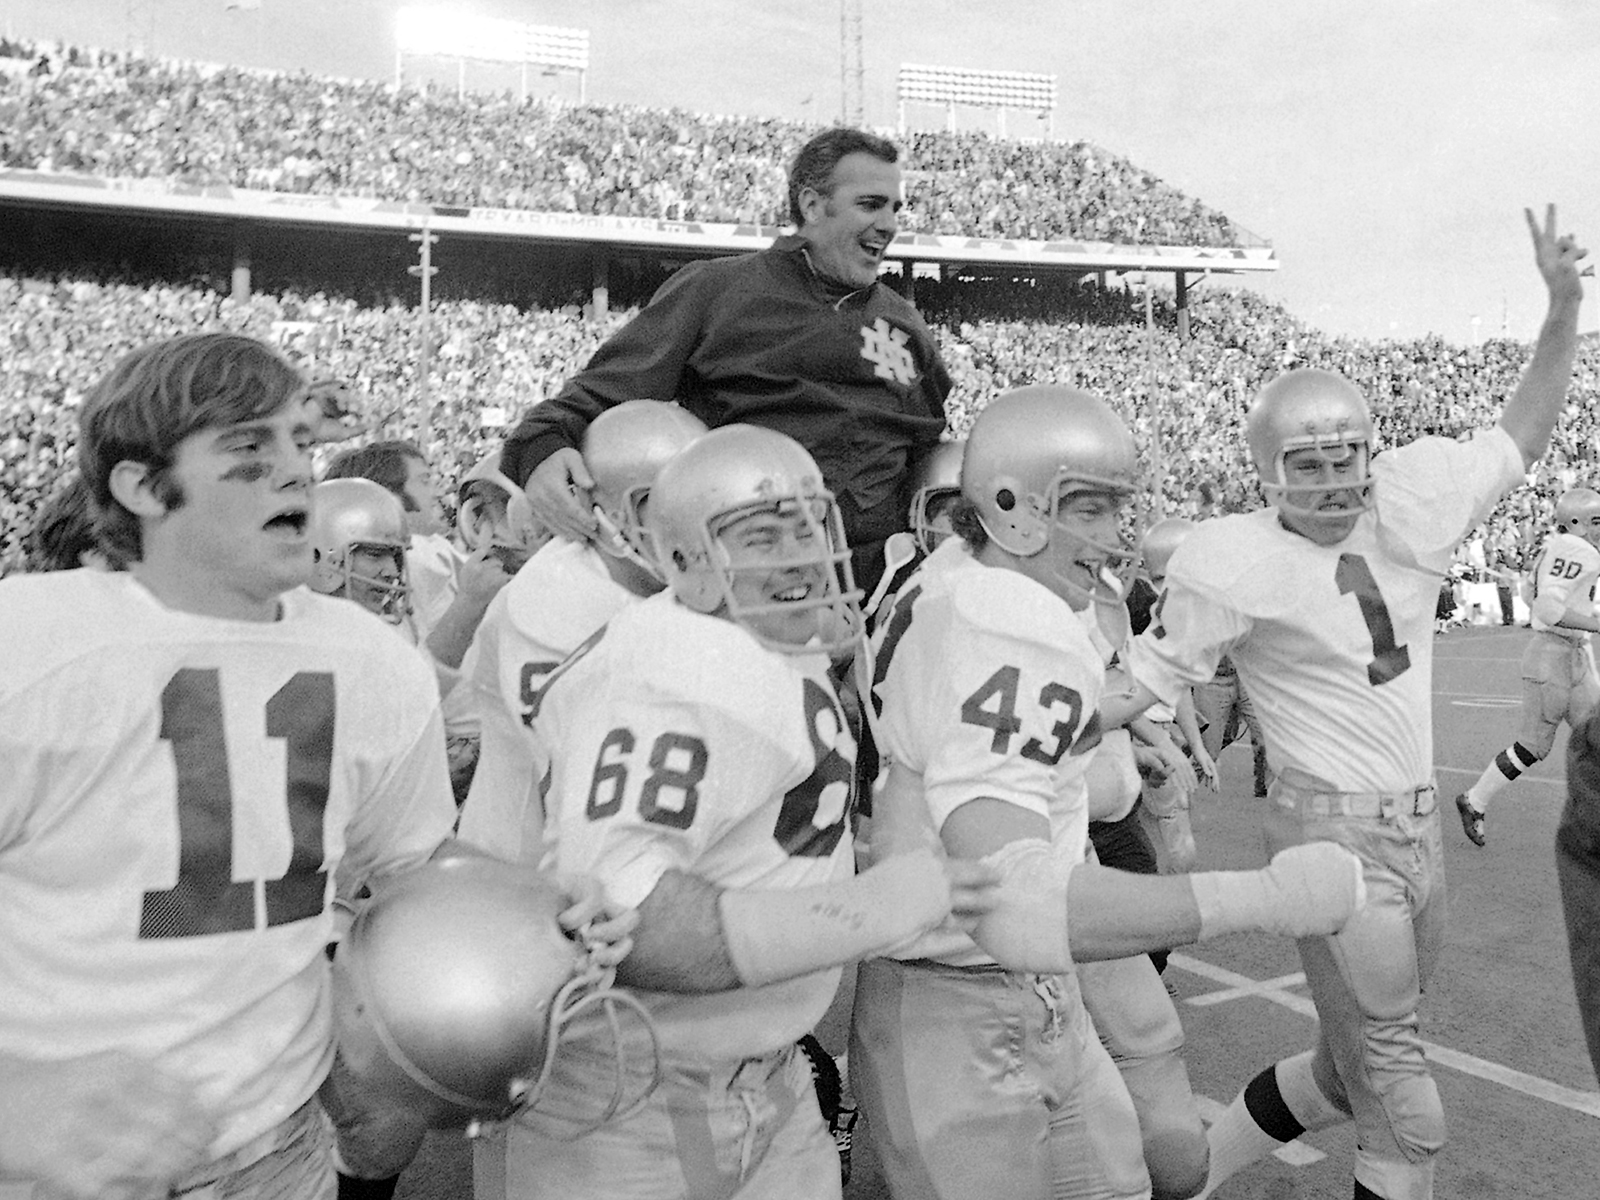 Parseghian was carried off the field after getting revenge on Texas in the Cotton Bowl.